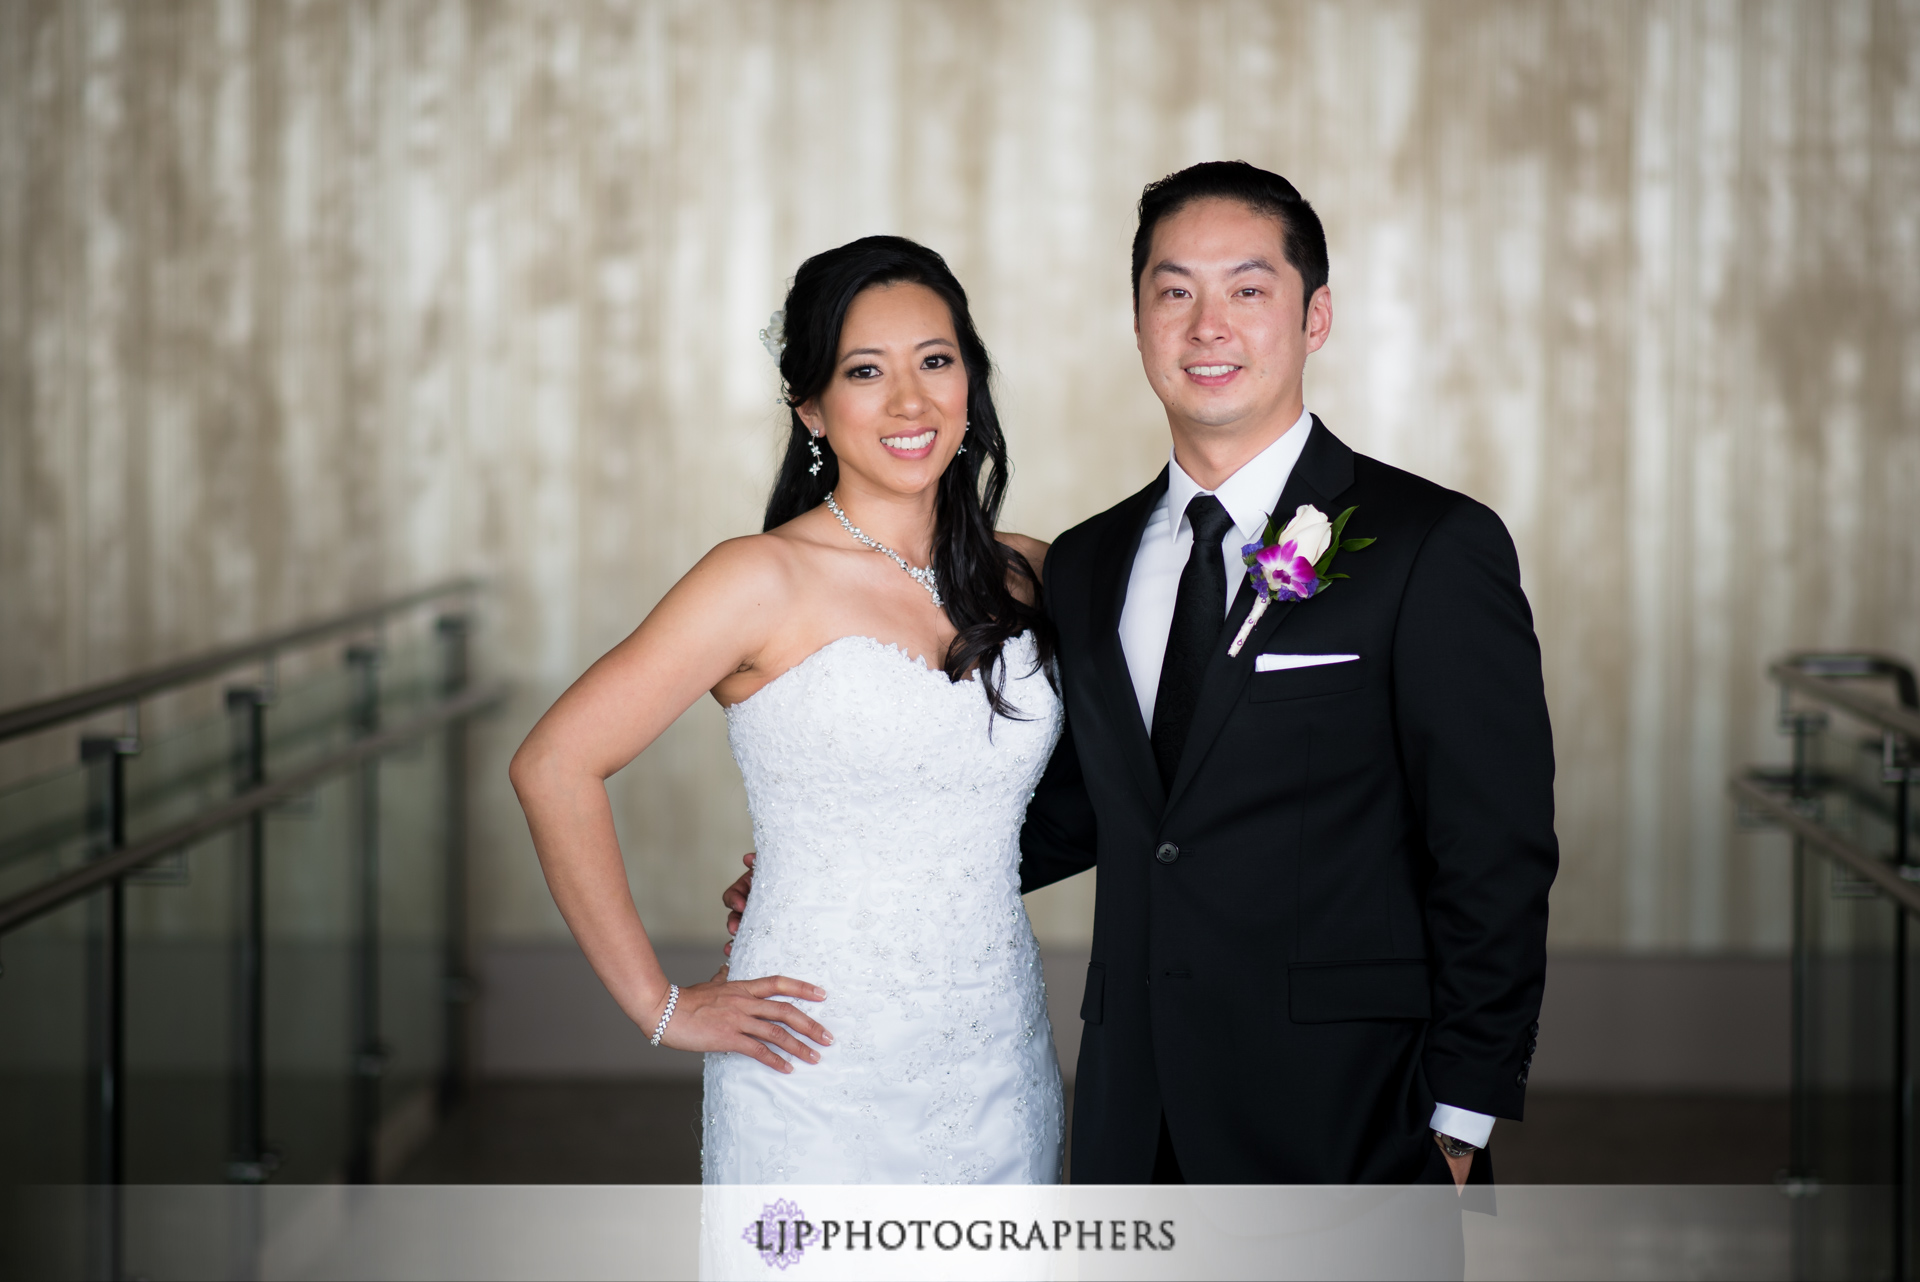 07-jw-marriott-los-angeles-wedding-photographer-first-look-wedding-party-couple-session-photos